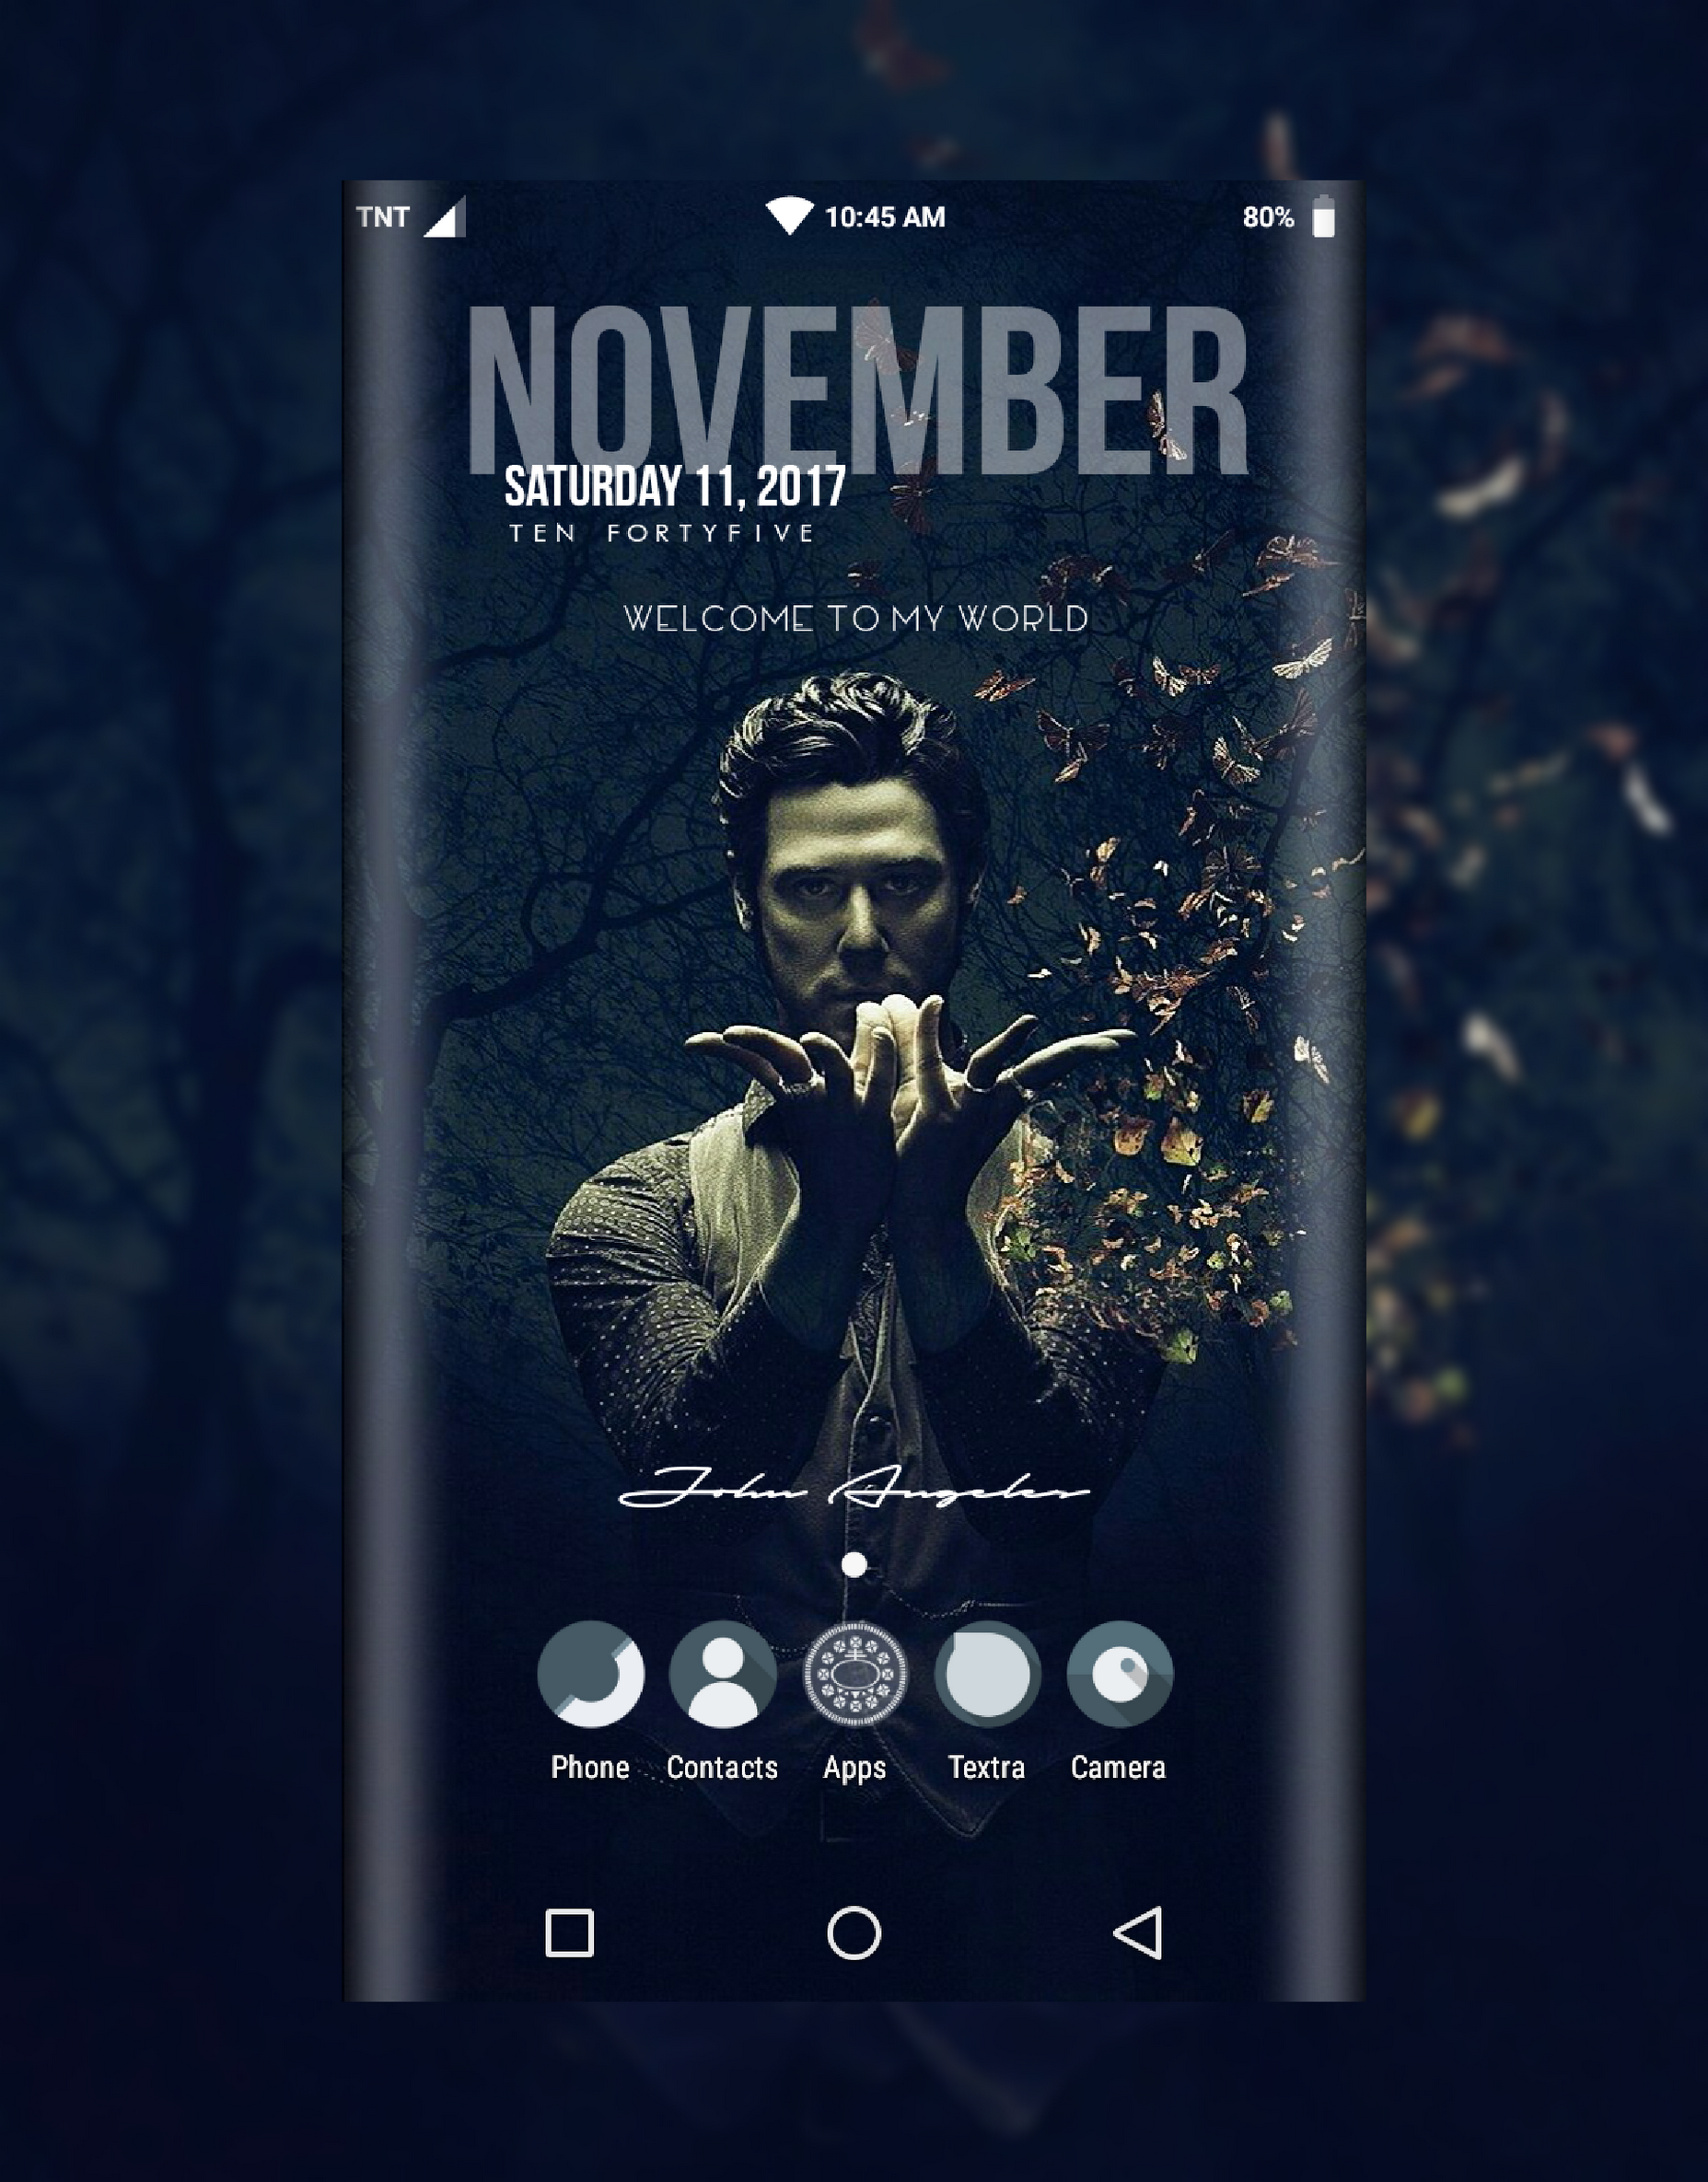 Widget huk zooper +ppick CH  Icon pack letitbe o +Sikebo